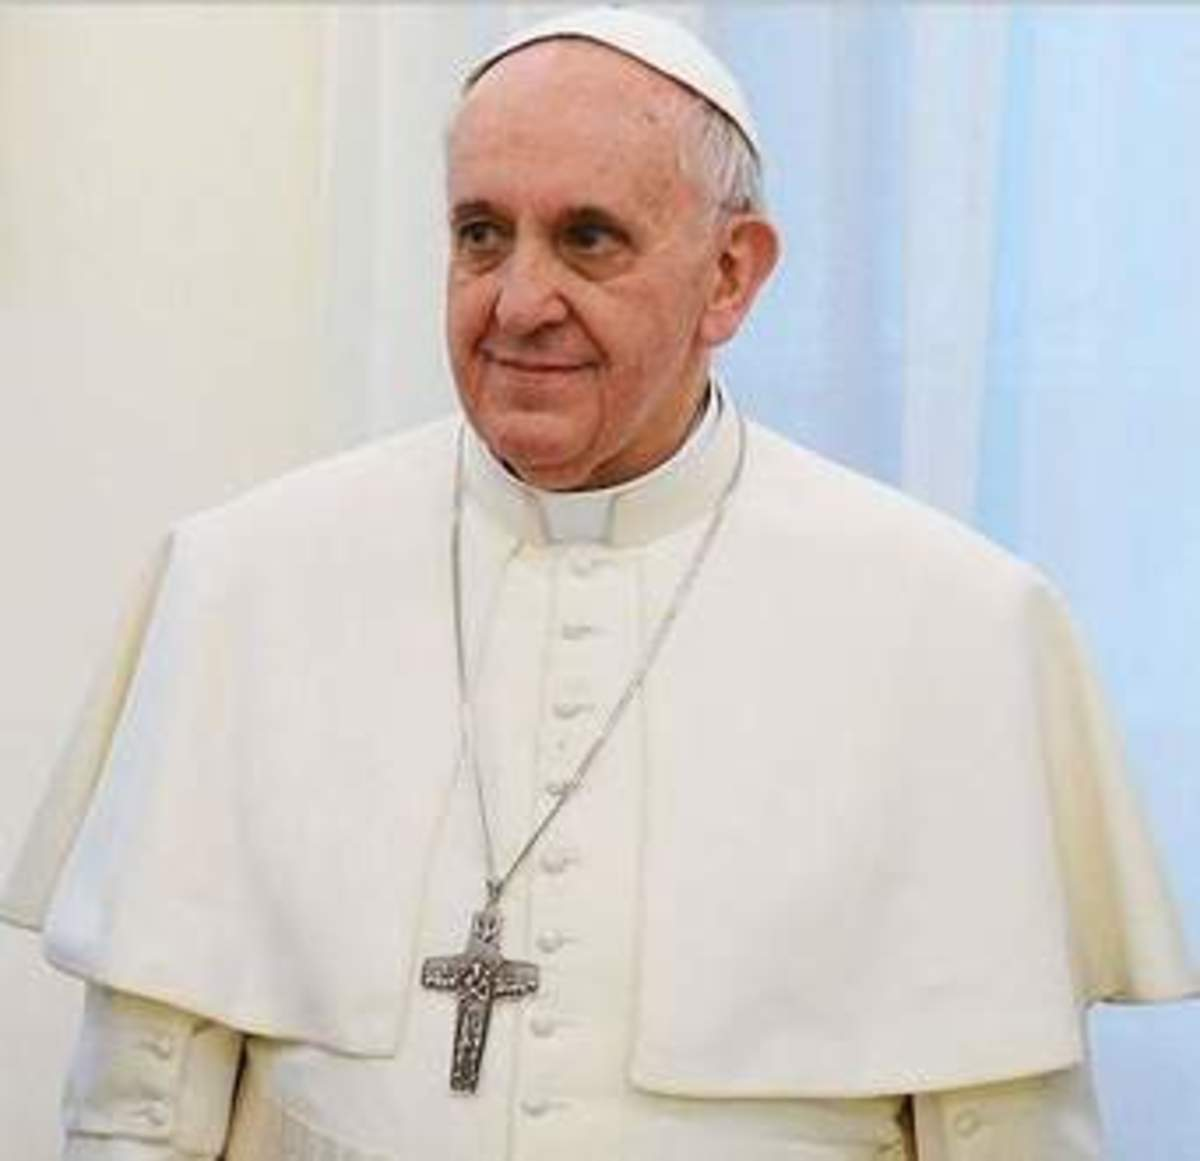 I believe that pope Francis is doing everything he can to bring all religions together, because that is the only way that could stop terrorism religious fighting, but he has to do that within the existing Roman Catholic rules, and that is not easy.